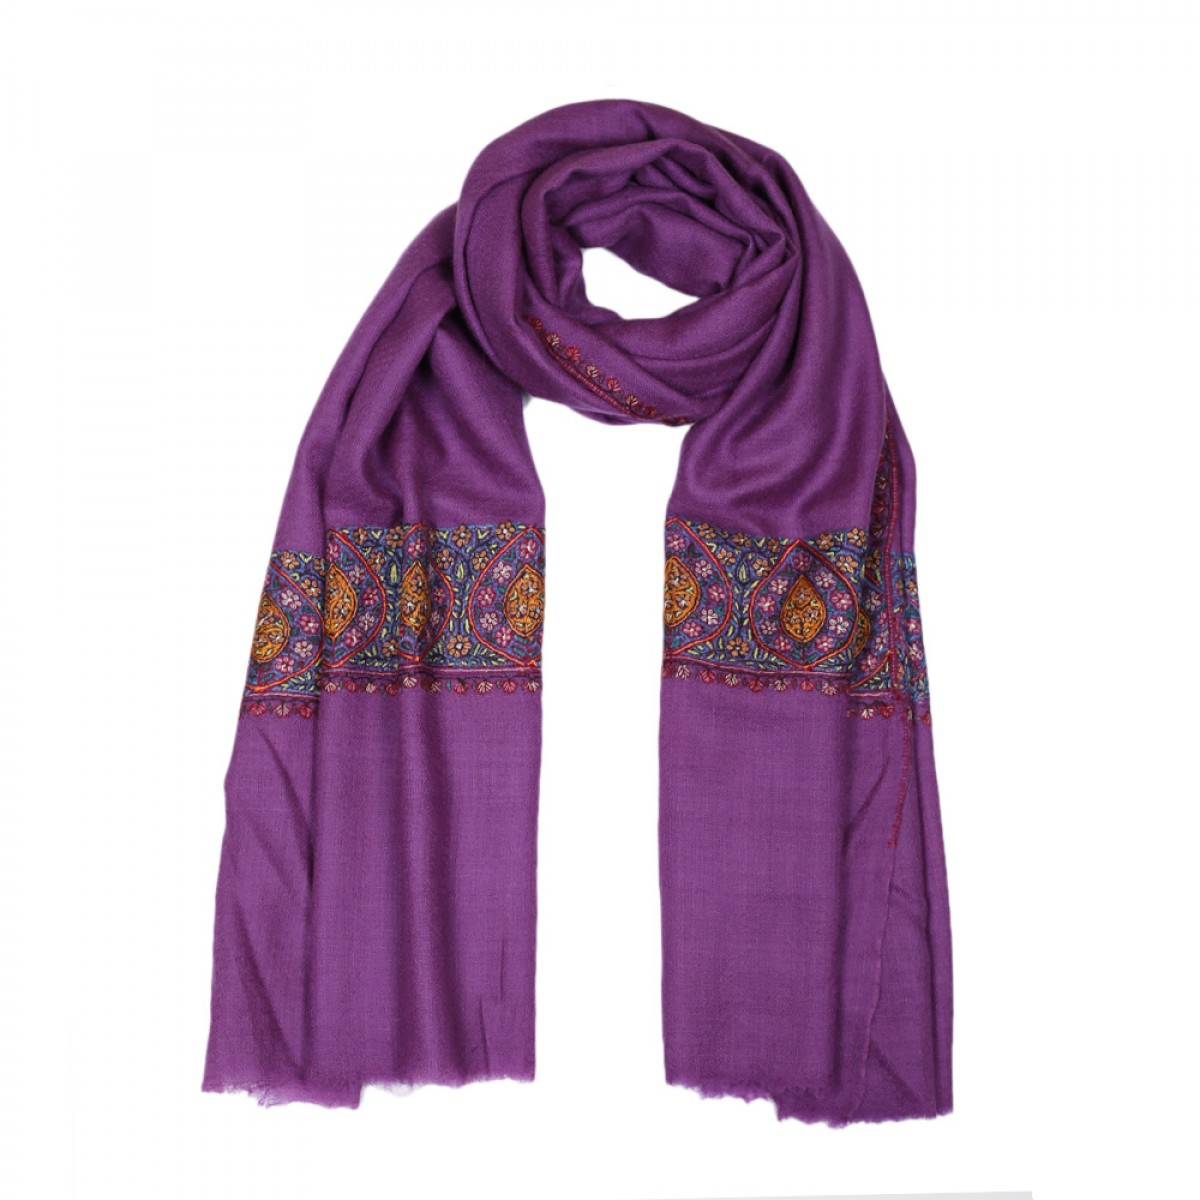 Embroidered Handloom Pashmina Stole - Purple